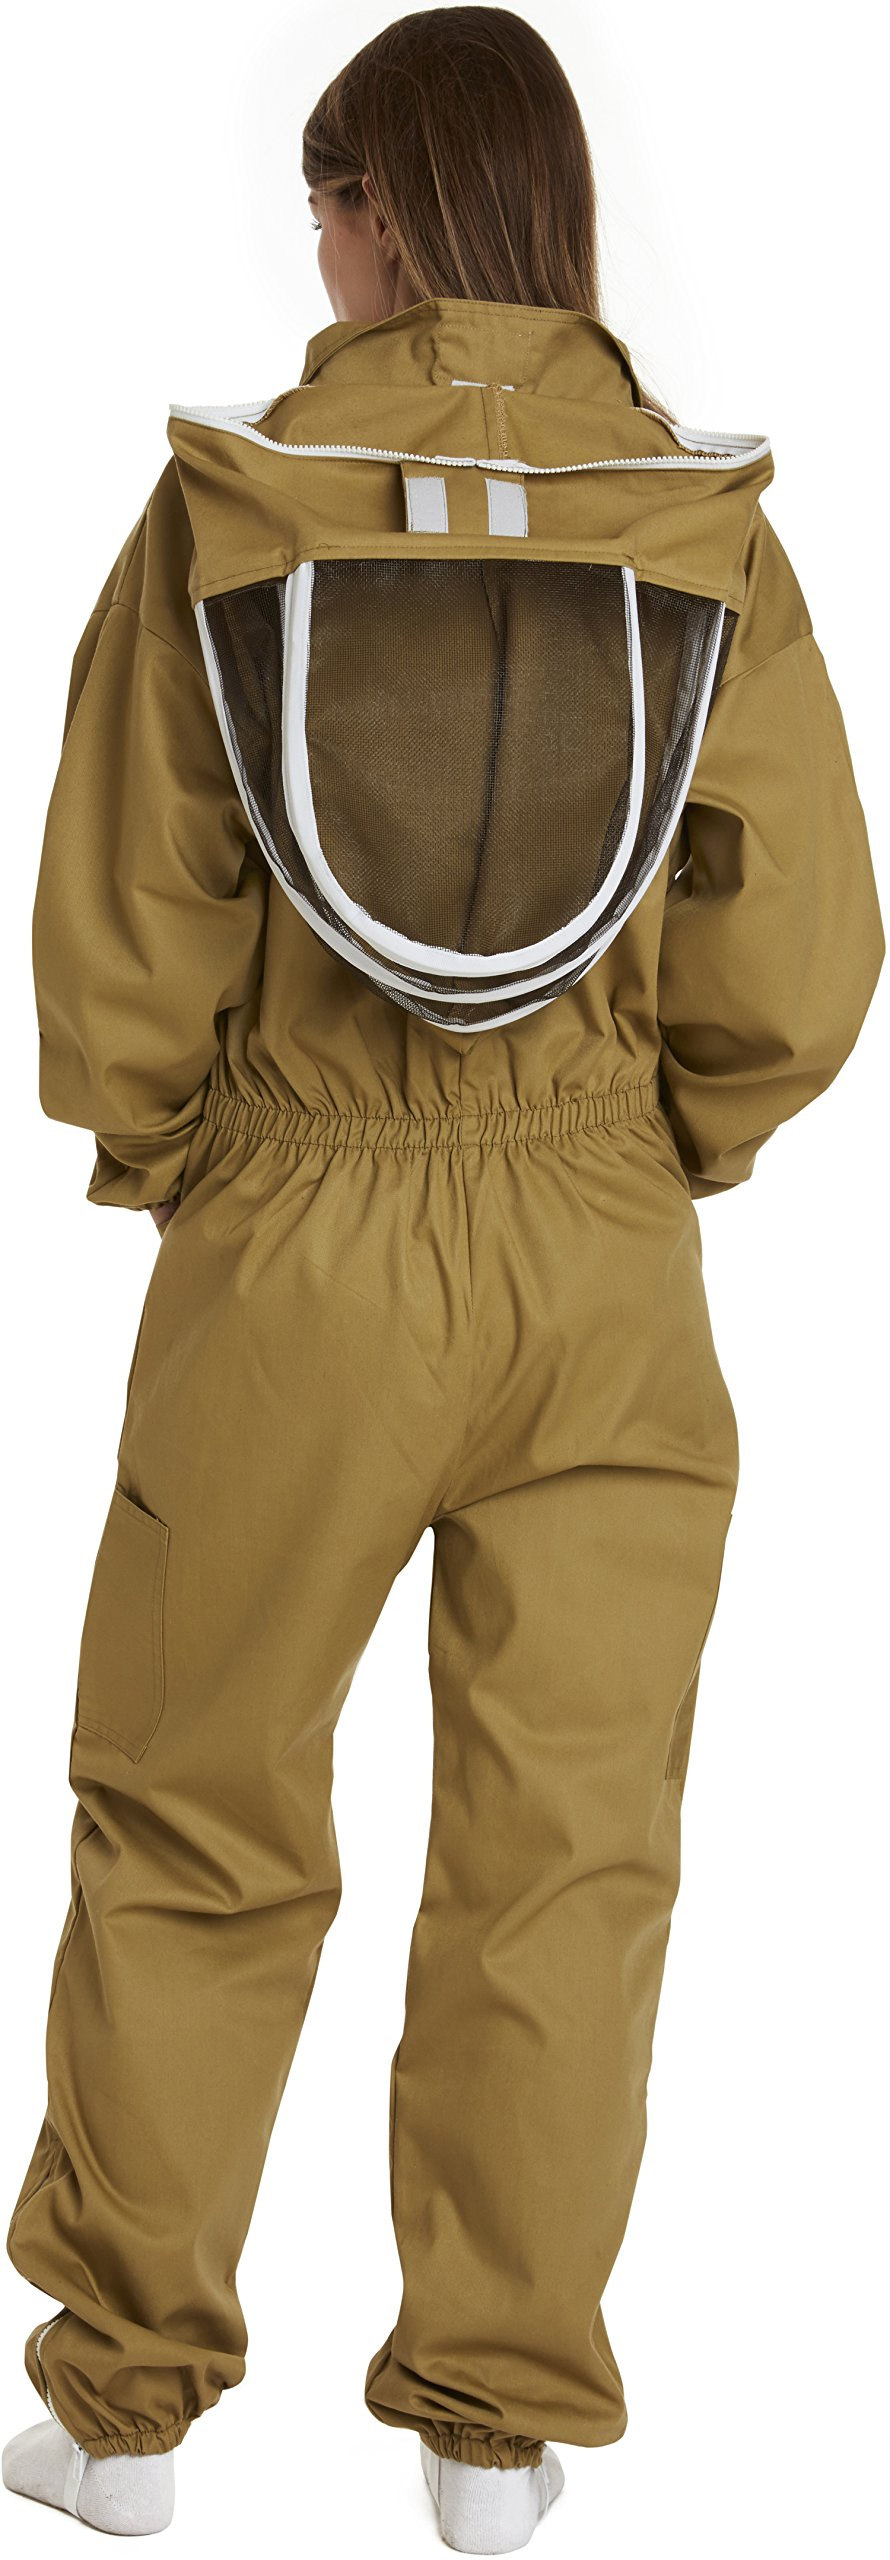 NATURAL APIARY - Apiarist Beekeeping Suit - Khaki - (All-in-One) - Fencing Veil - Total Protection for Professional & Beginner Beekeepers - X Large by Natural Apiary (Image #6)